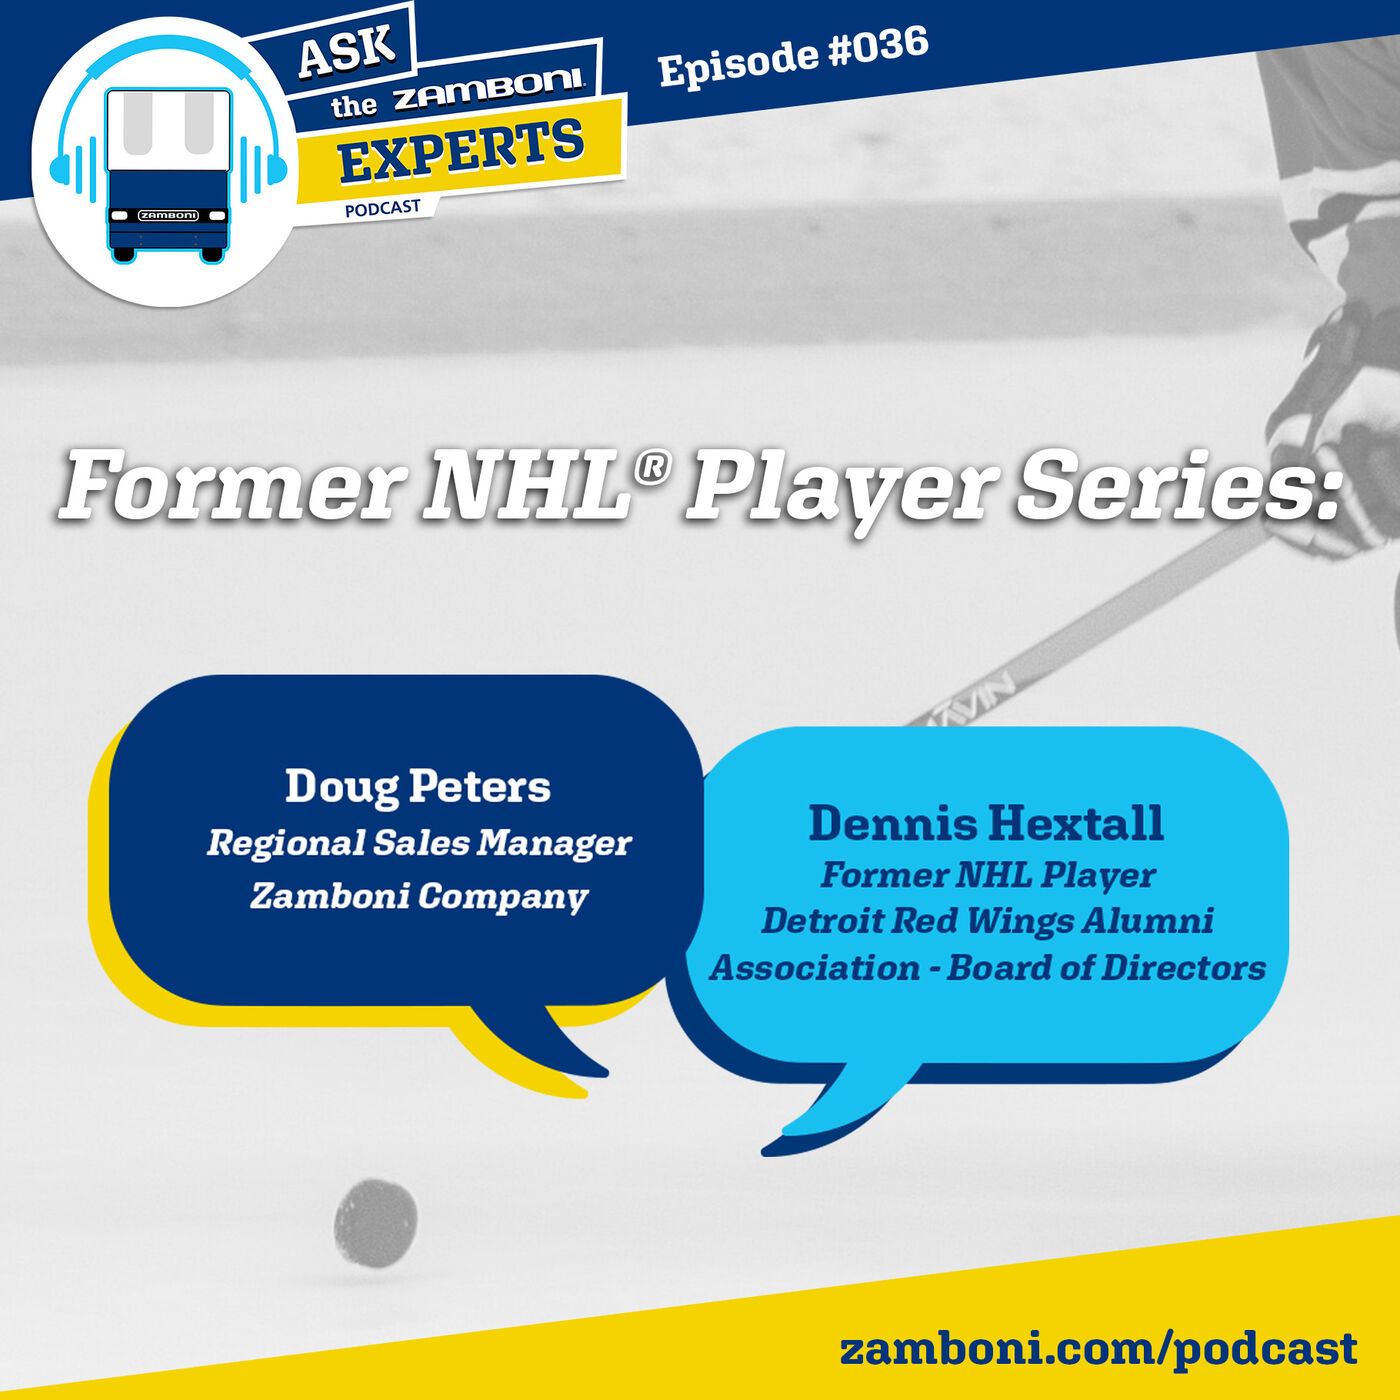 Episode #036: Former NHL® Player Dennis Hextall